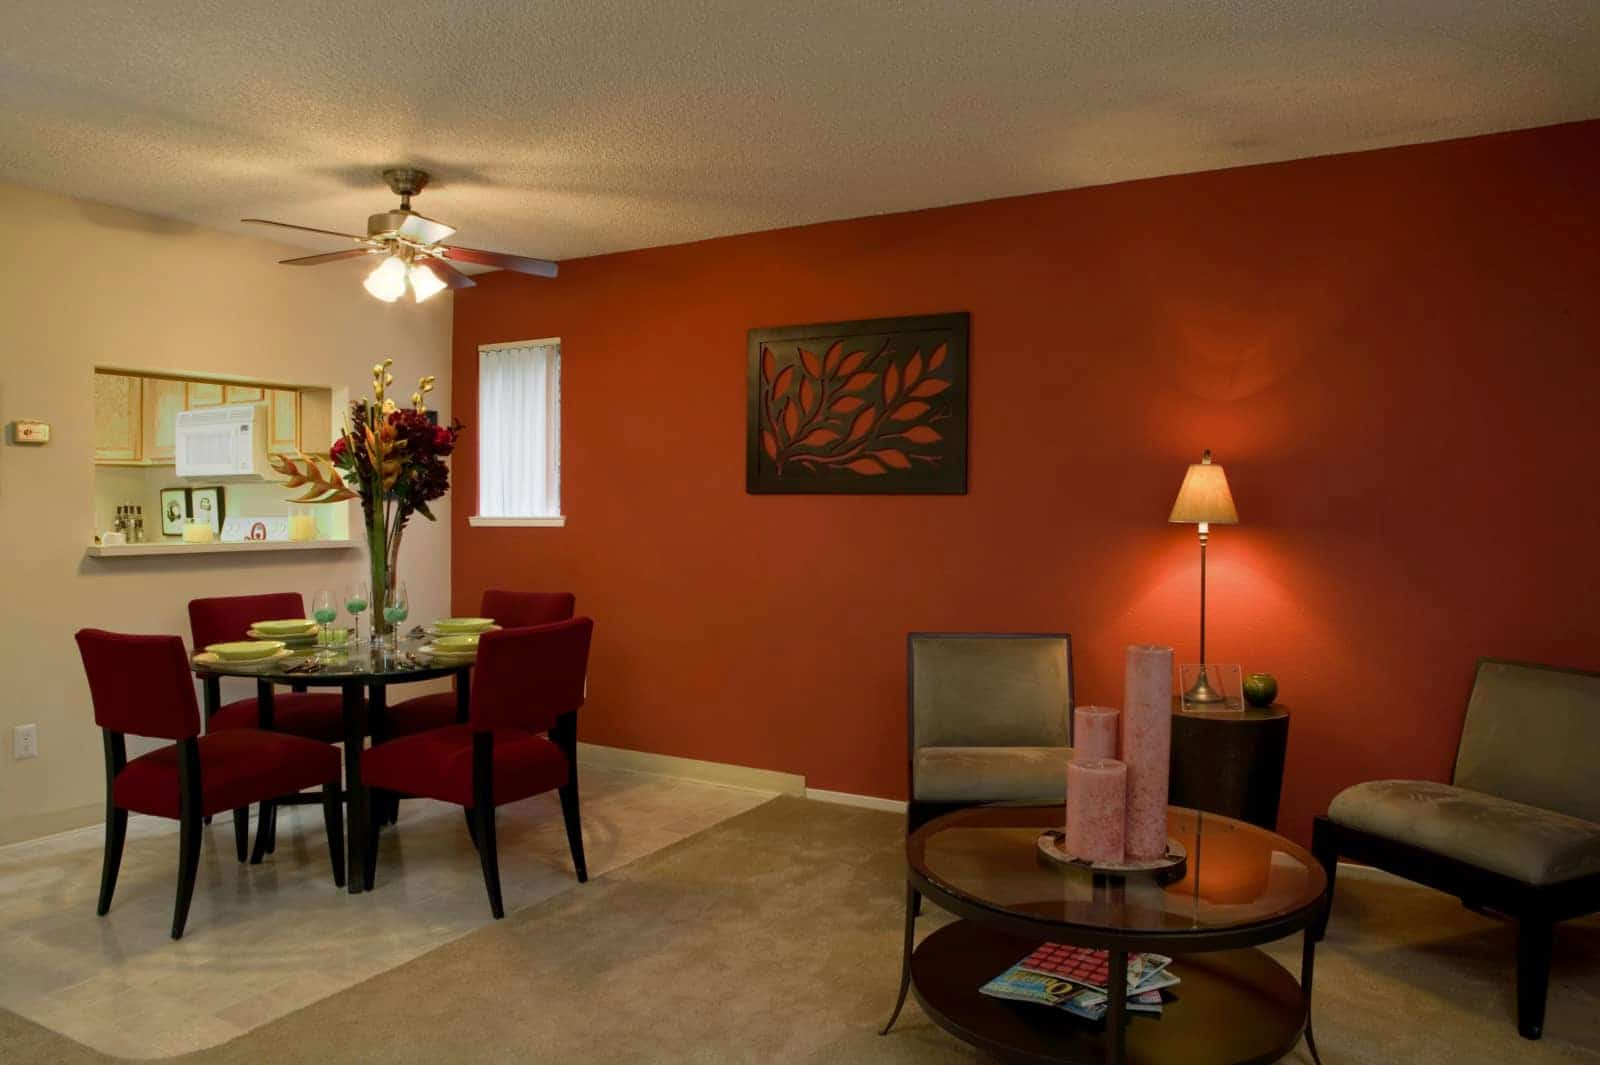 Interior of a living and dining room area and pass through to kitchen.